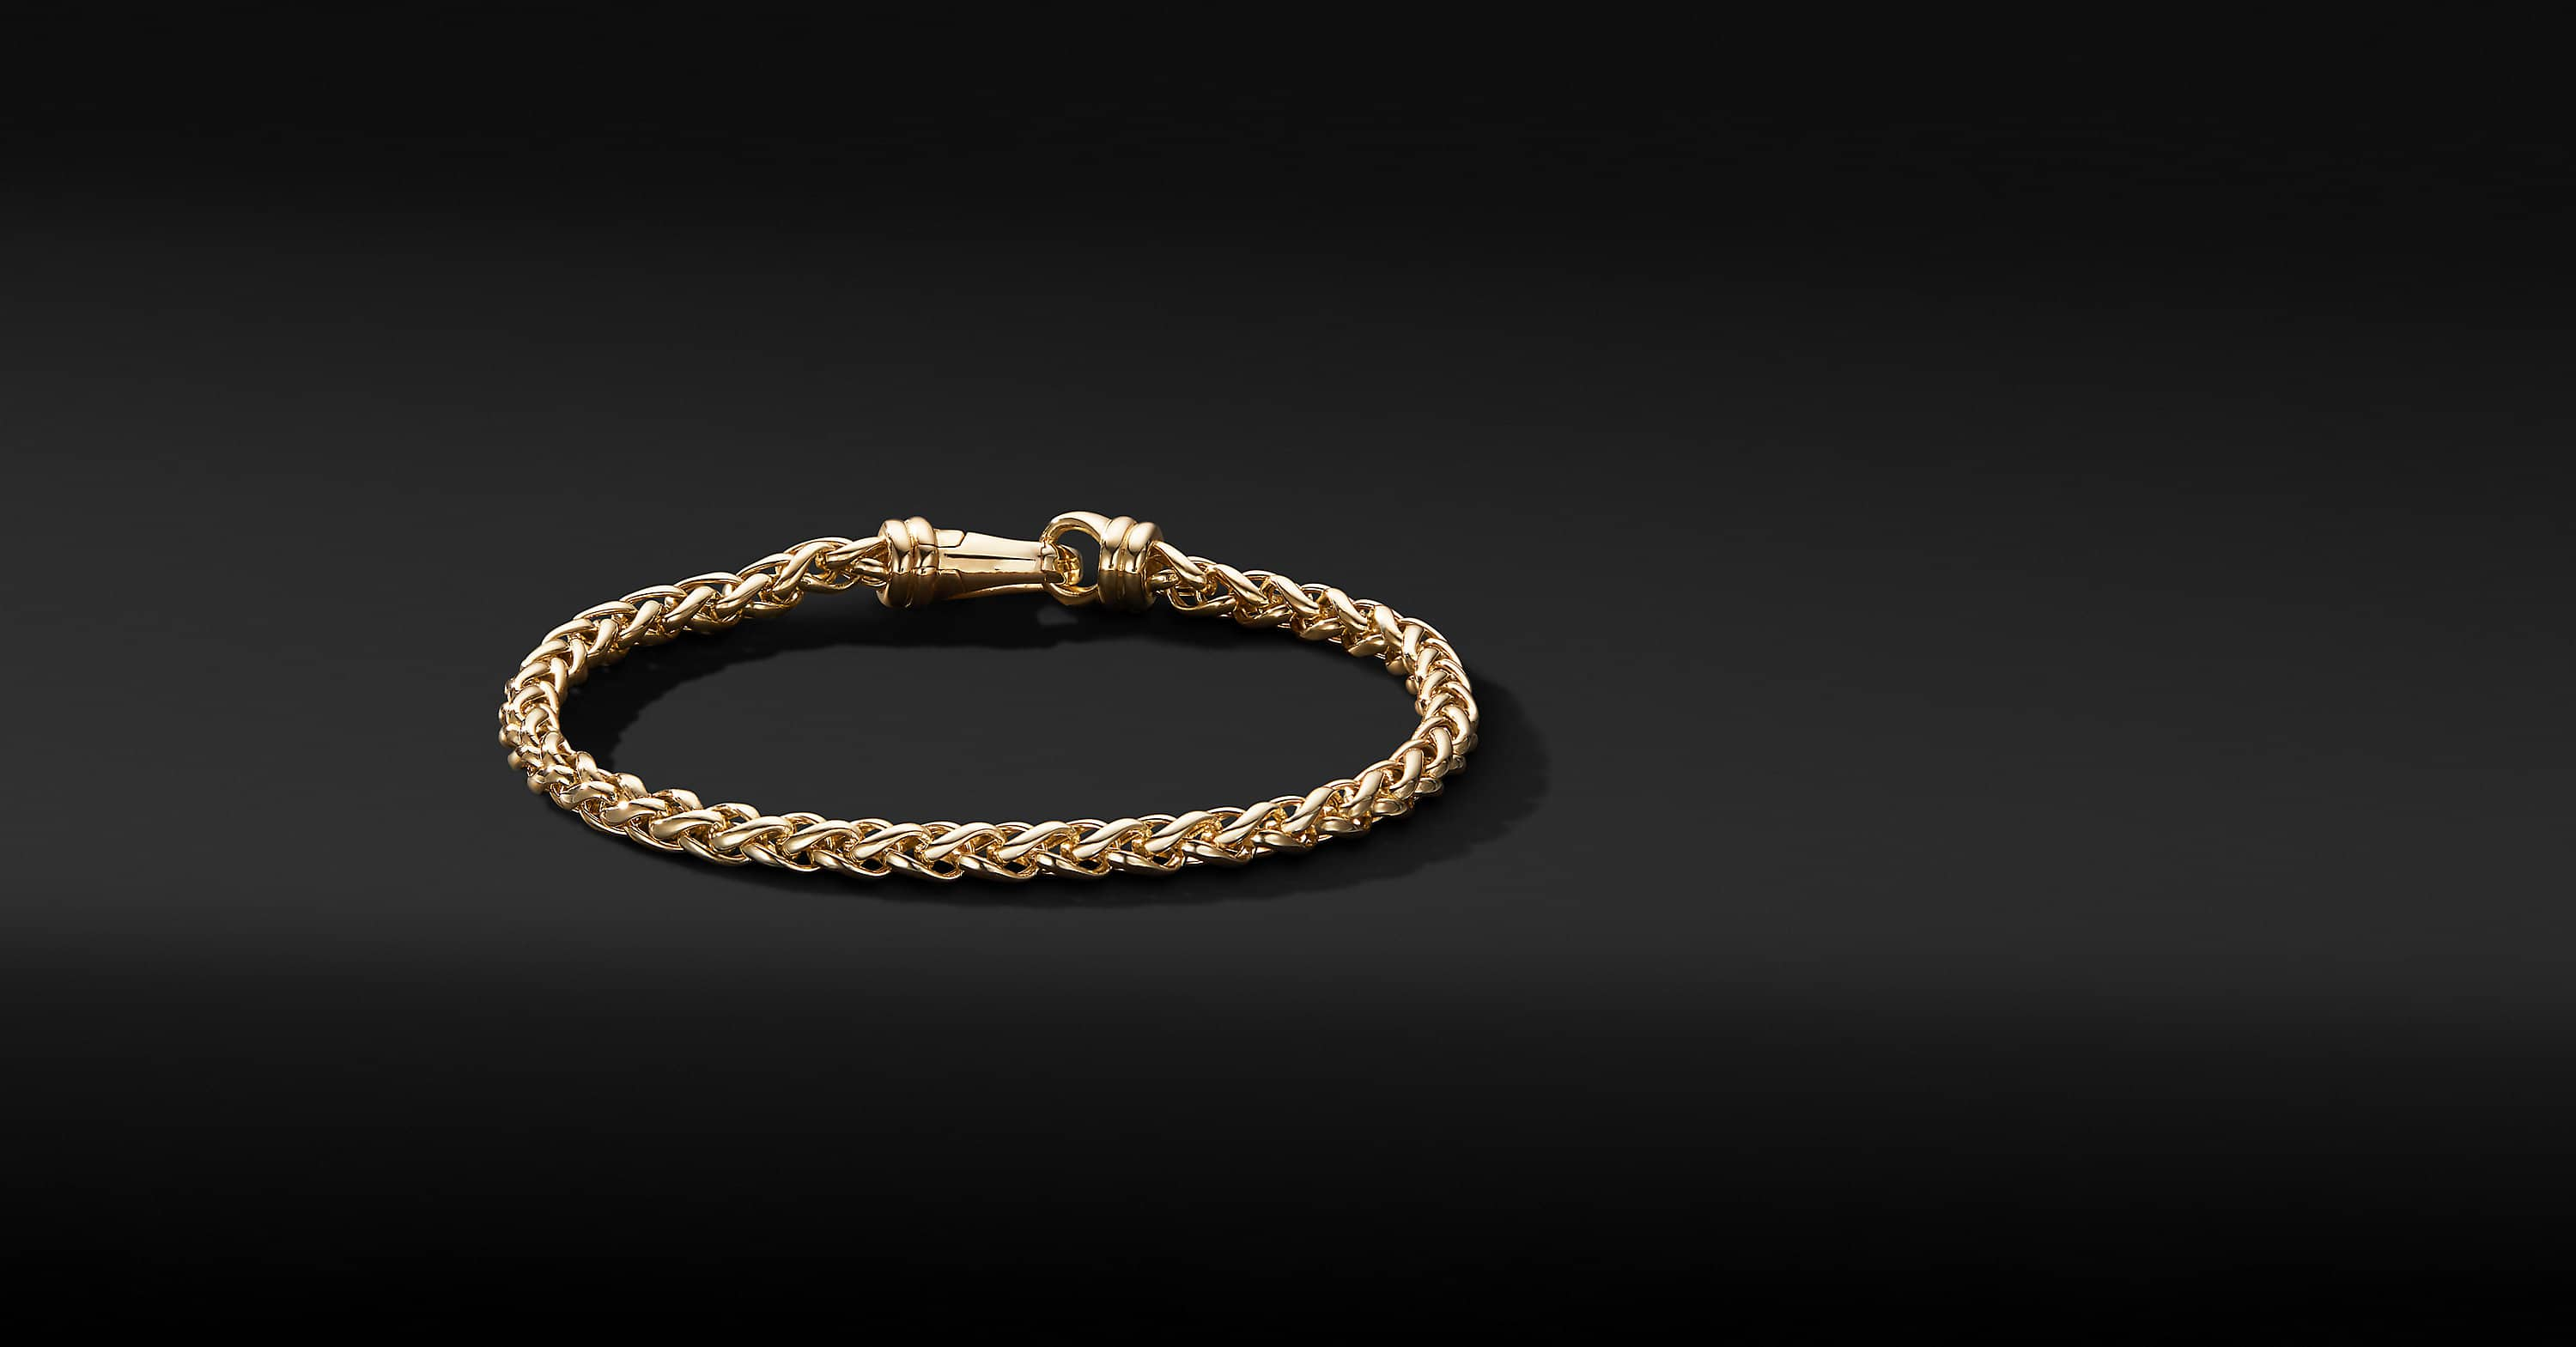 Wheat Chain Bracelet in 18K Yellow Gold, 4mm